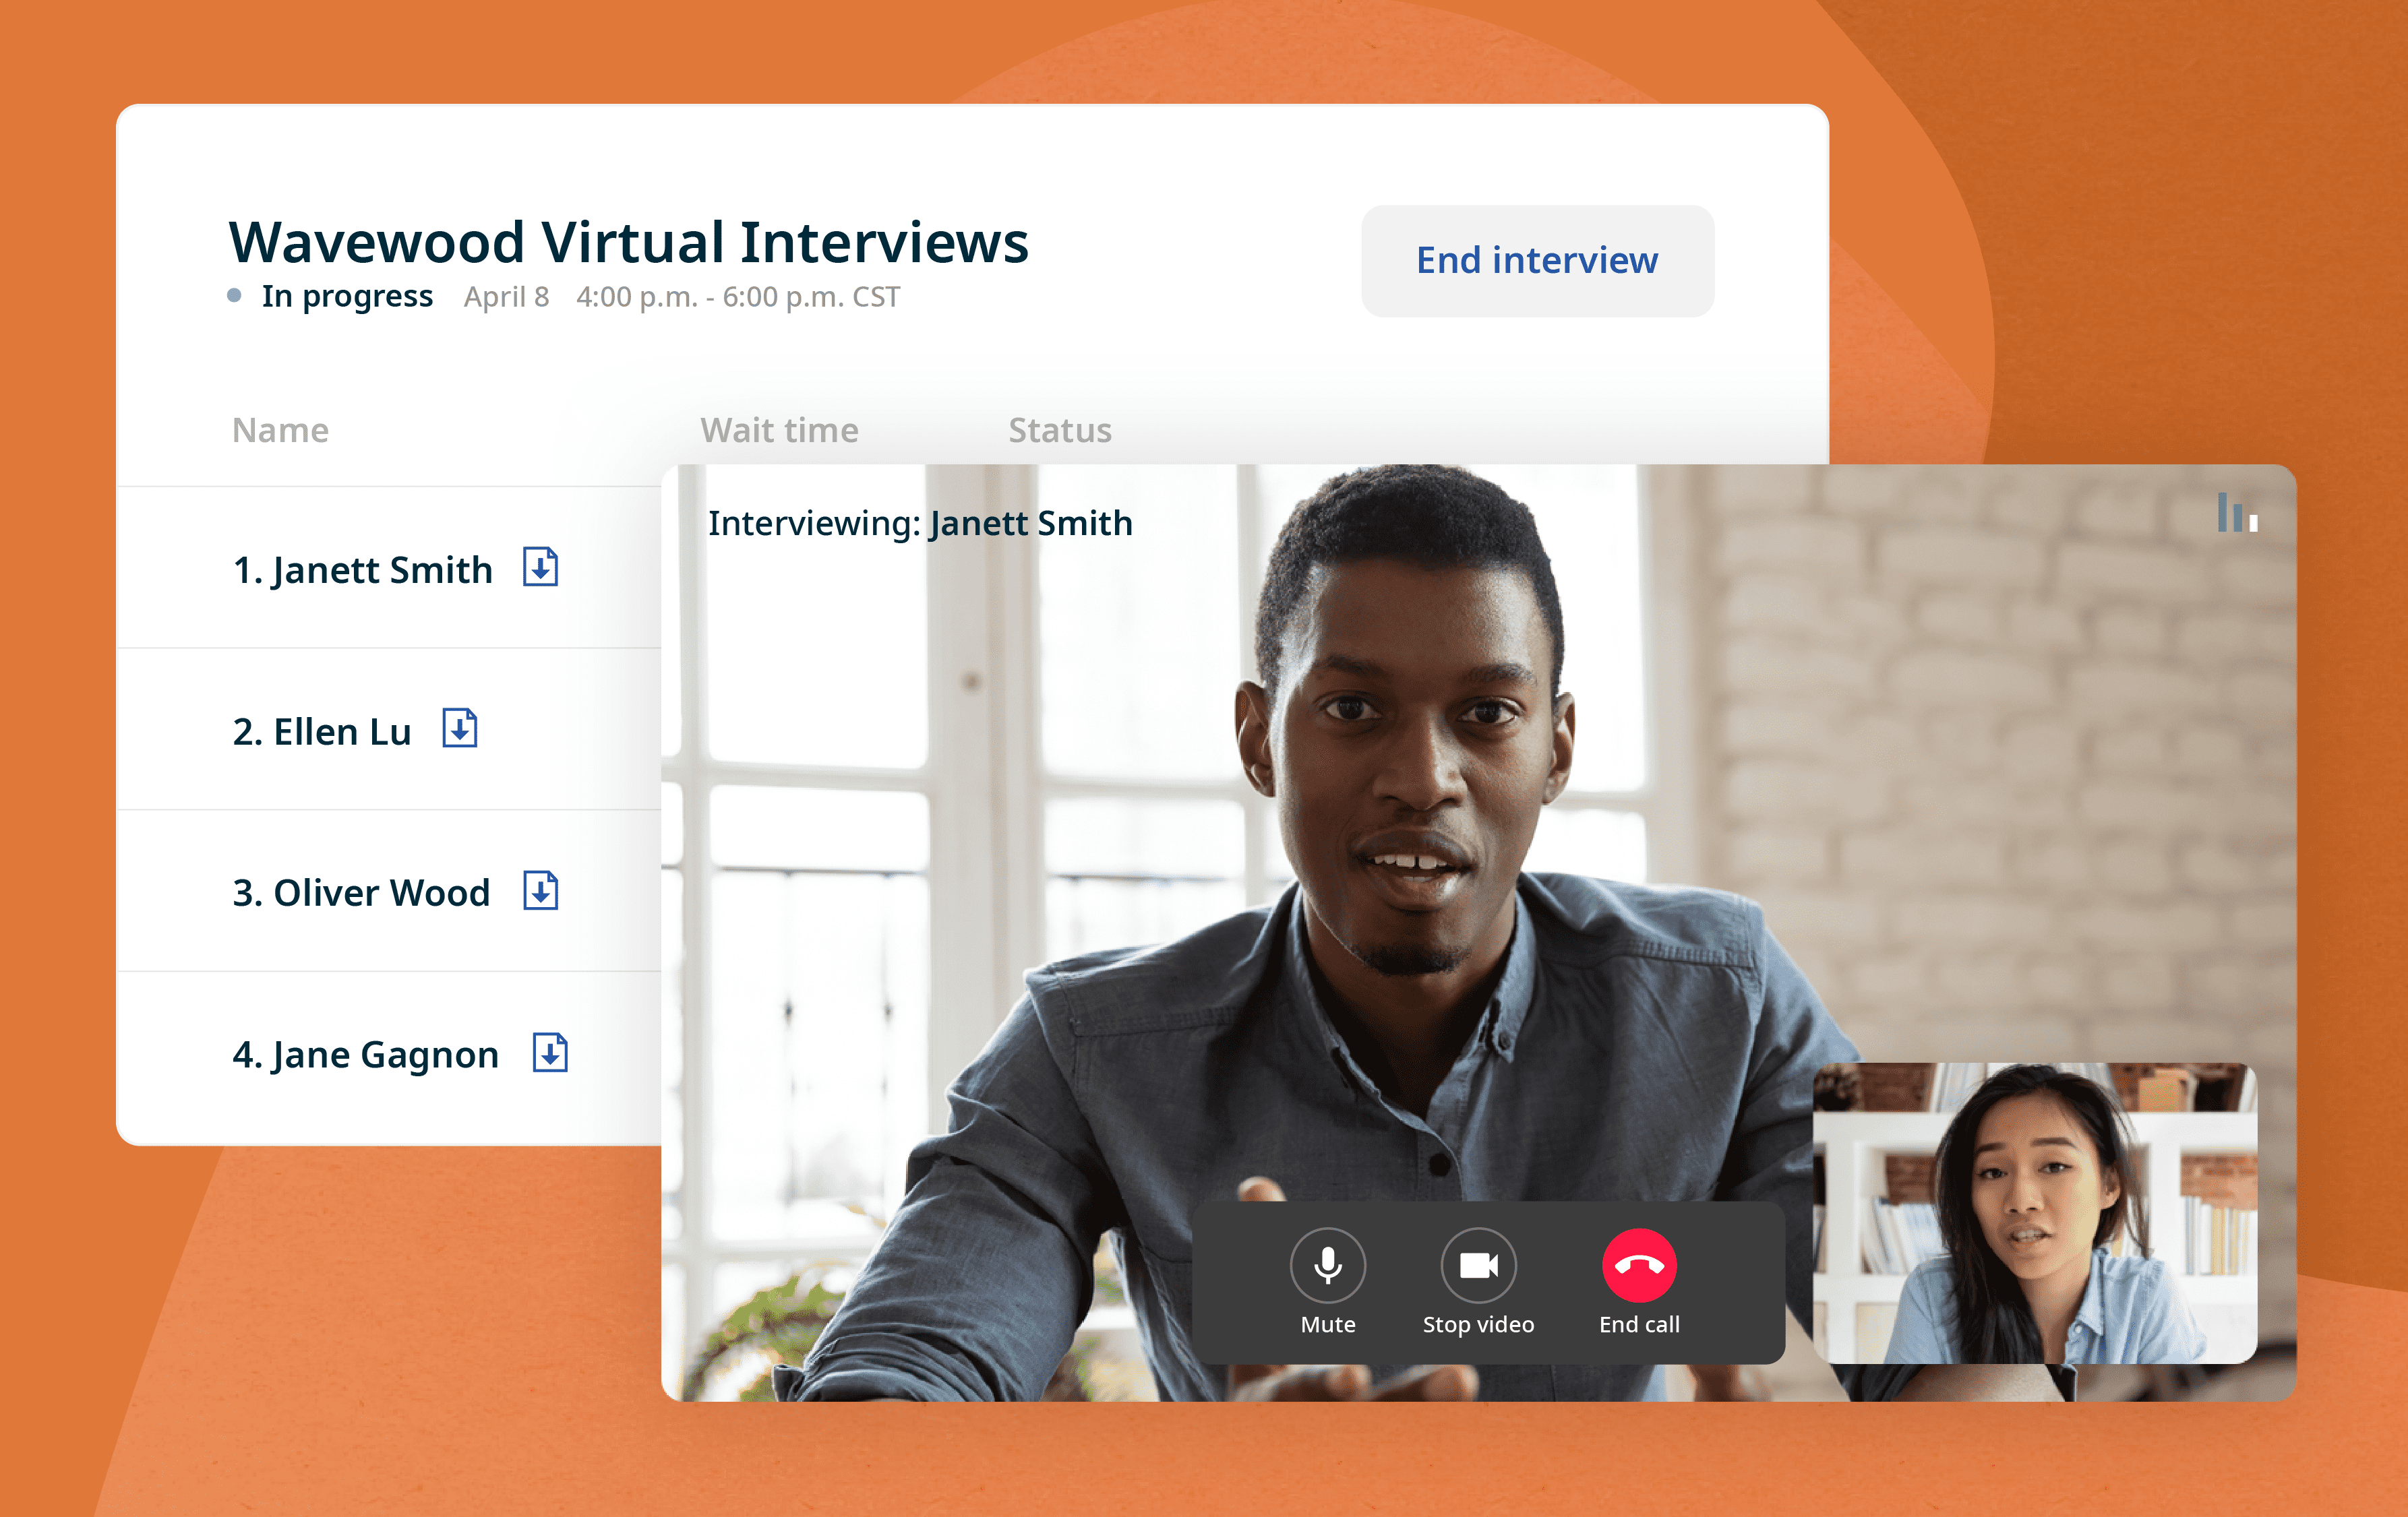 On interview day, employers join Indeed Interview and can review candidate resumes prior to the virtual interview.